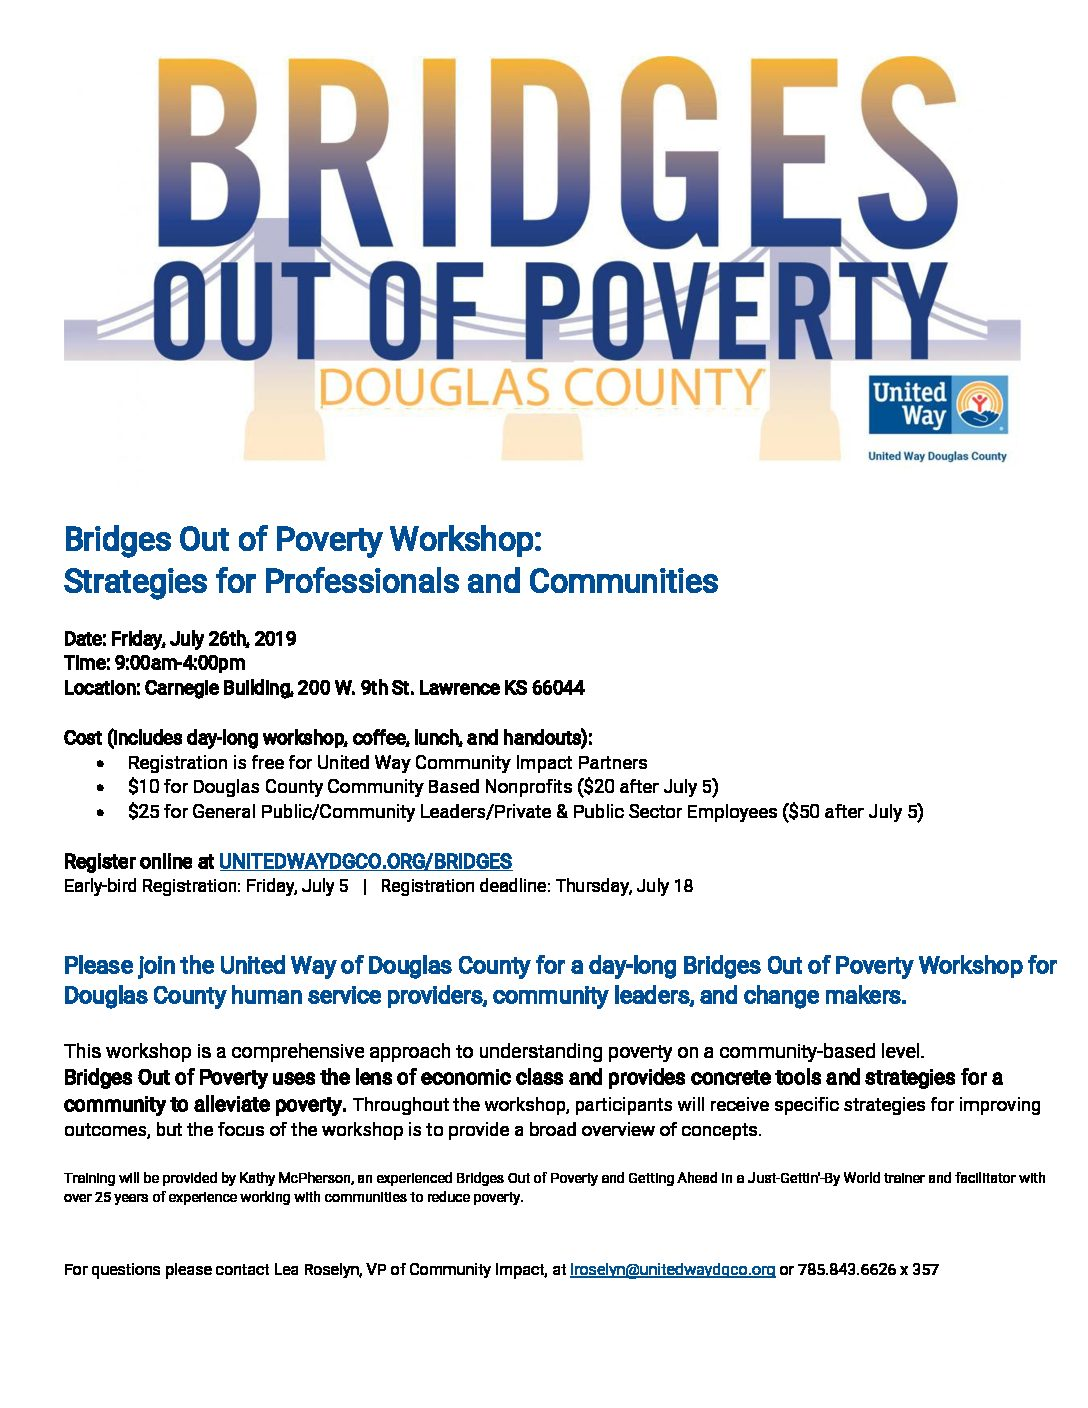 United Way offering workshop to fight poverty